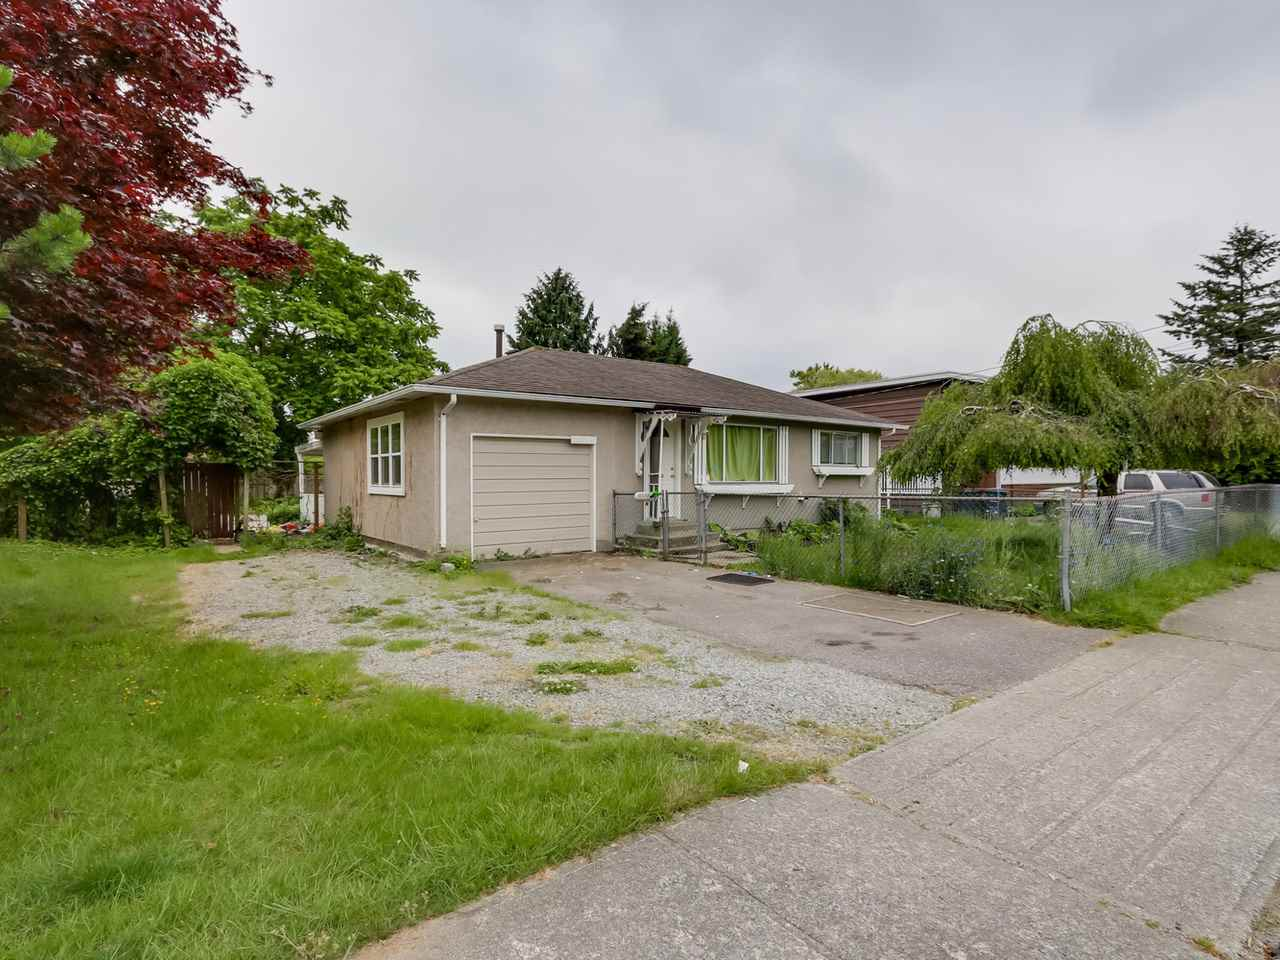 Main Photo: 2156 PRAIRIE Avenue in Port Coquitlam: Glenwood PQ House for sale : MLS® # R2074707